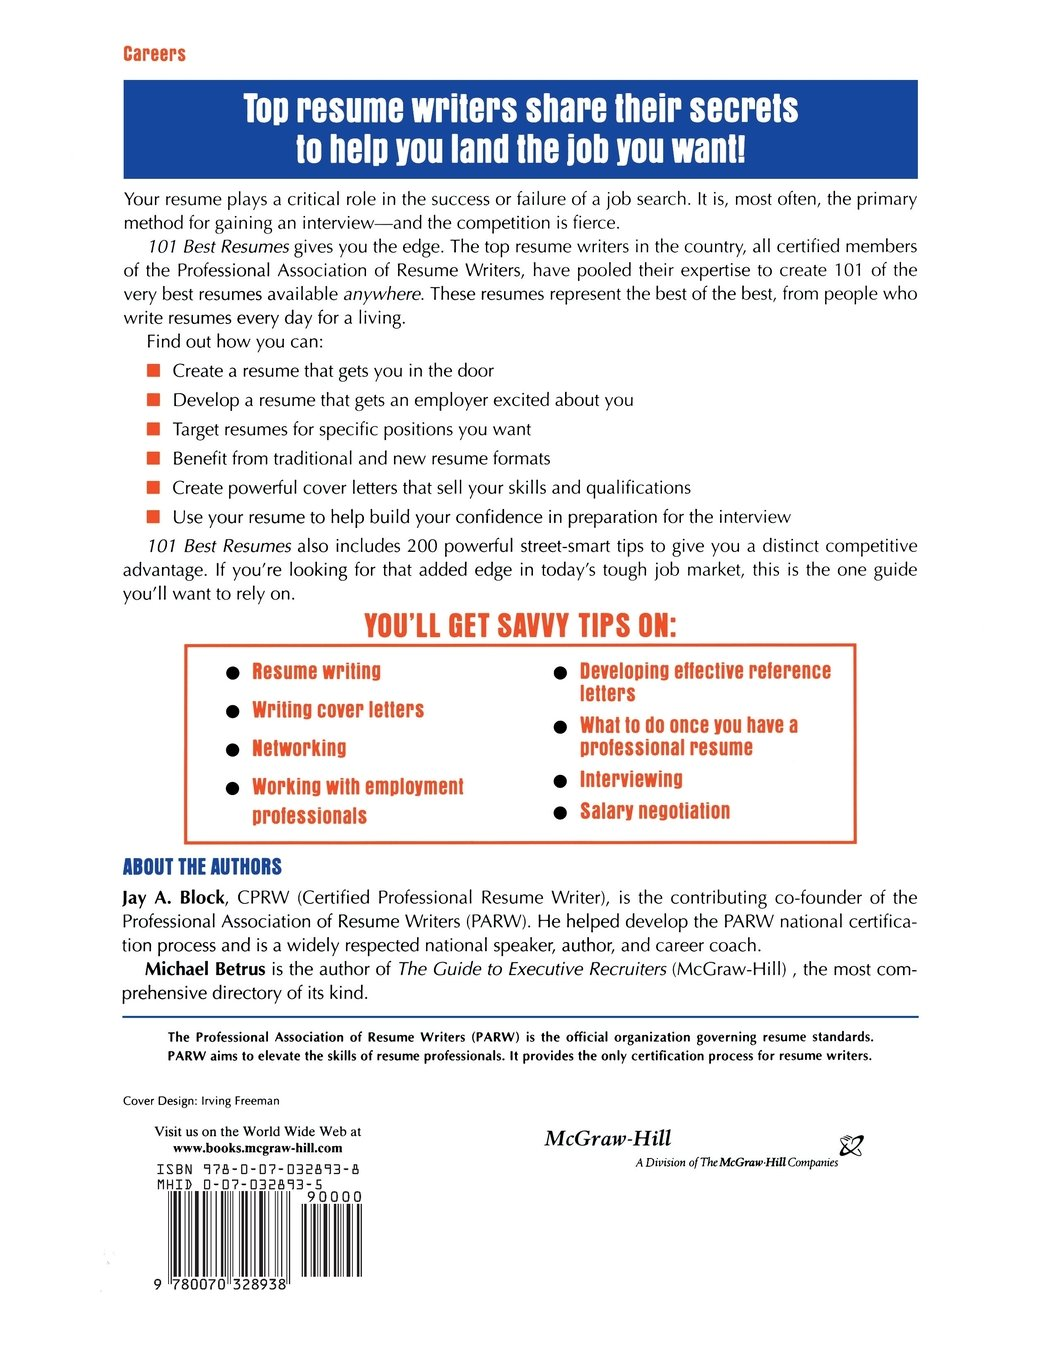 best resumes endorsed by the professional association of resume writers block betrus Resume Professional Association Of Resume Writers